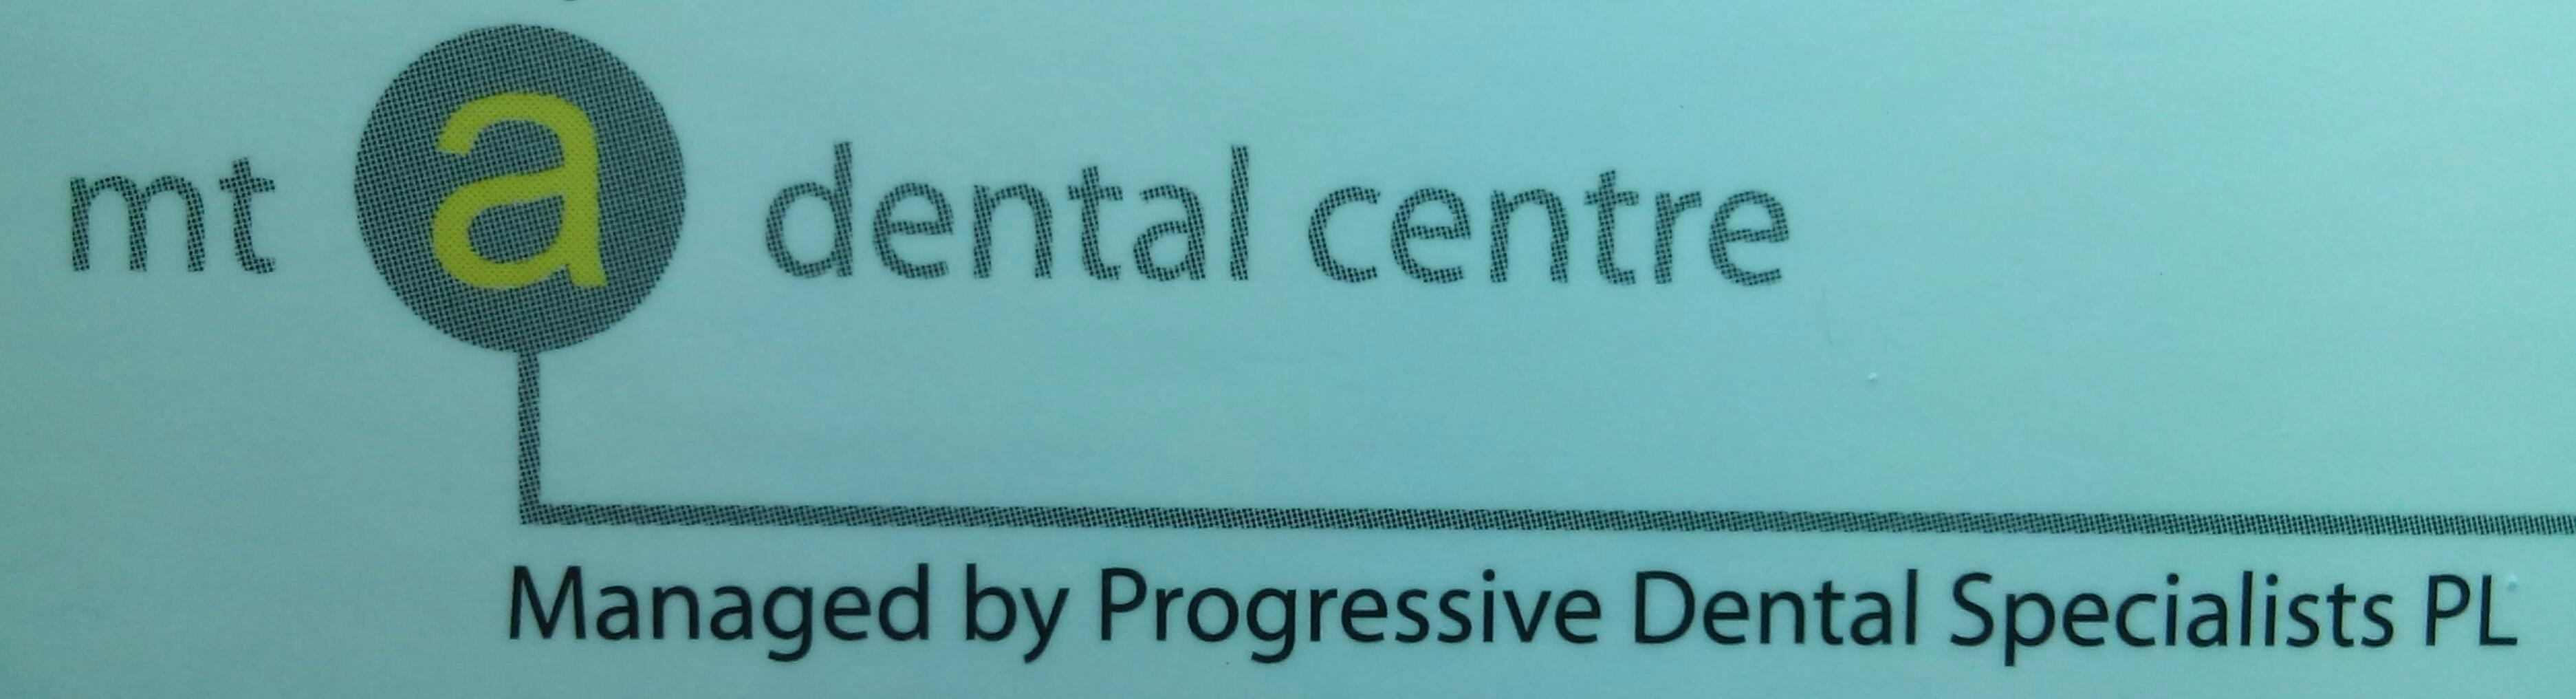 MT A Dental Centre by Progressive Dental Specialists